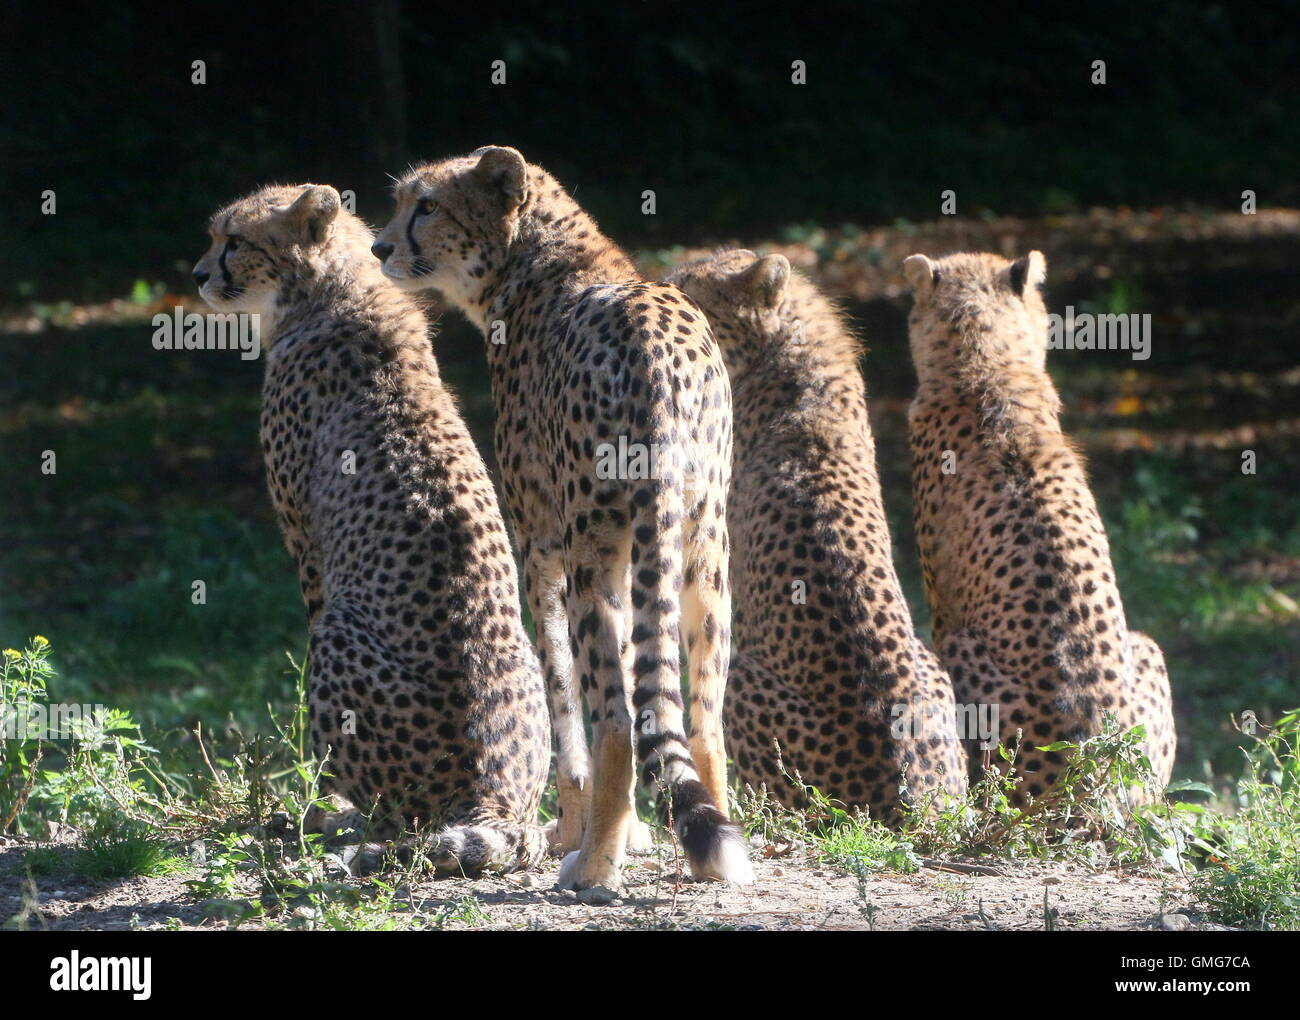 Mother Cheetah (Acinonyx jubatus) with three adolescent cubs, backlit.in the evening sun - Stock Image